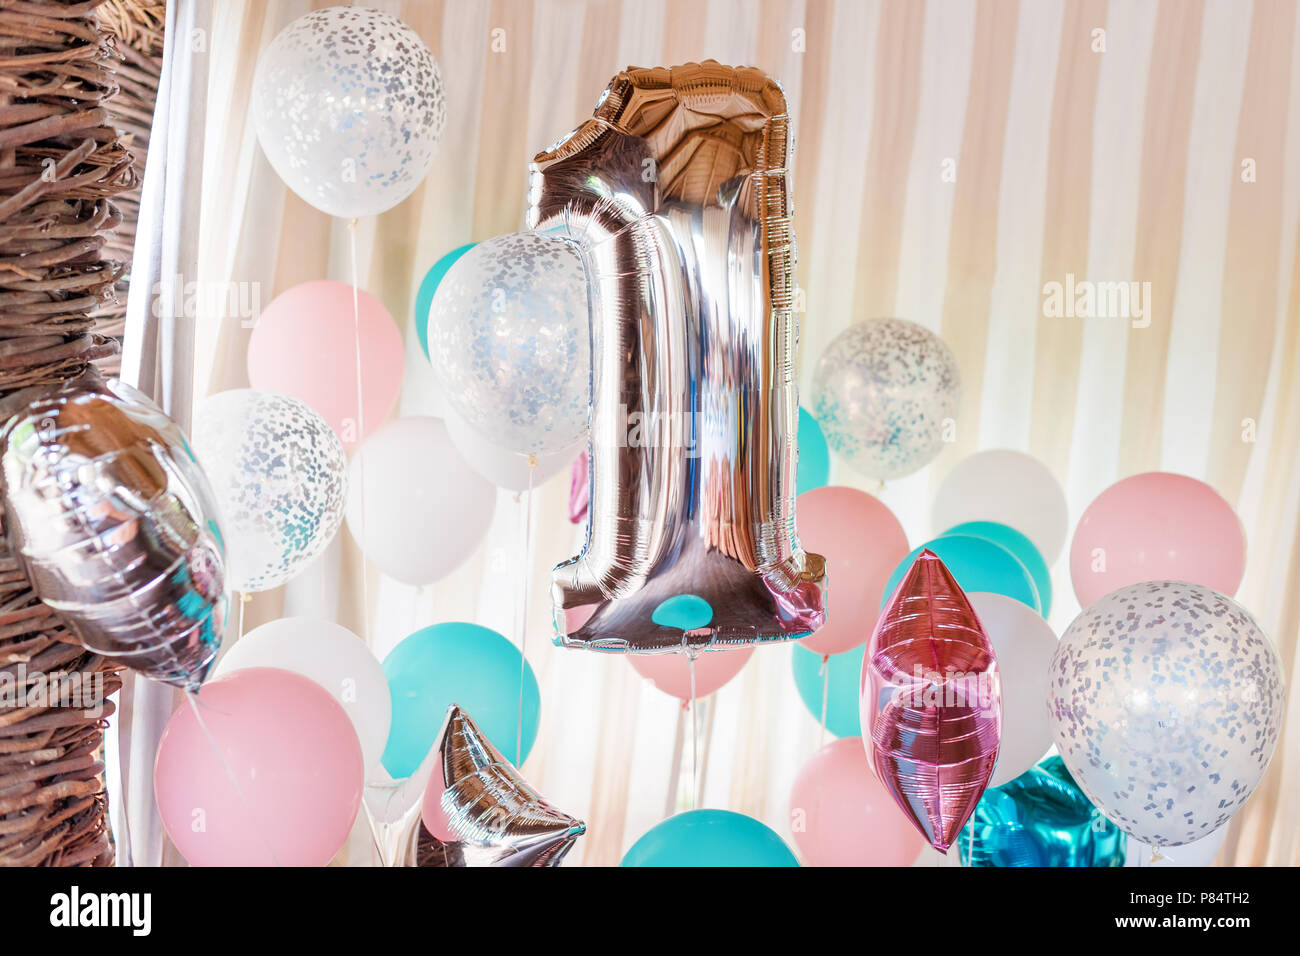 Pink, silver and blue inflatable balloons on ribbons - number 1. Decorations for birthday party. Metallic design balloon Stock Photo